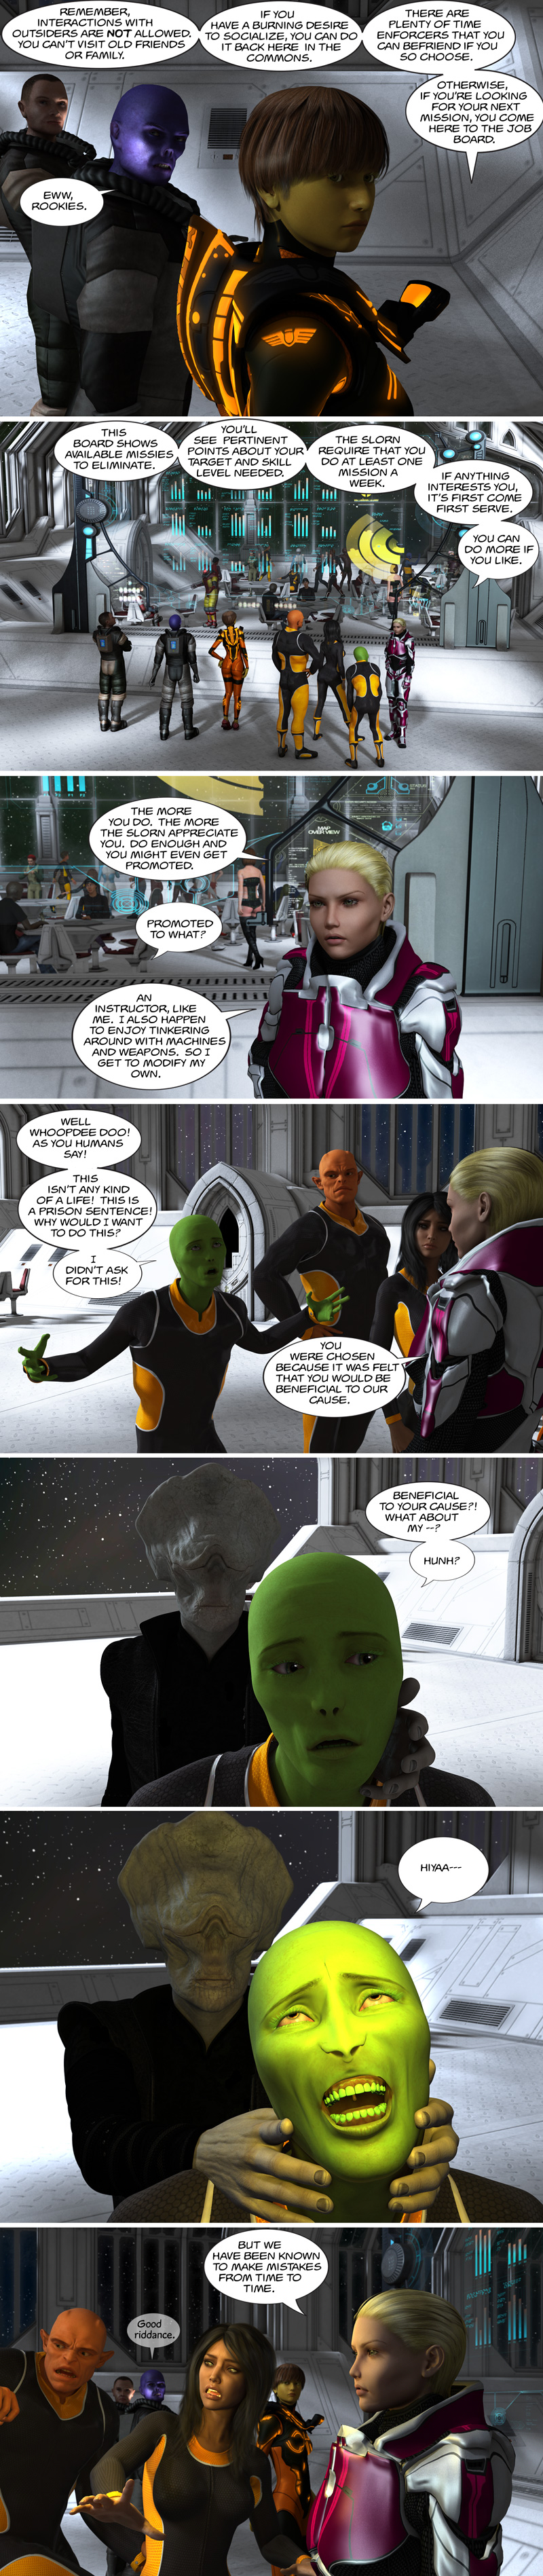 Chapter 11, page 45